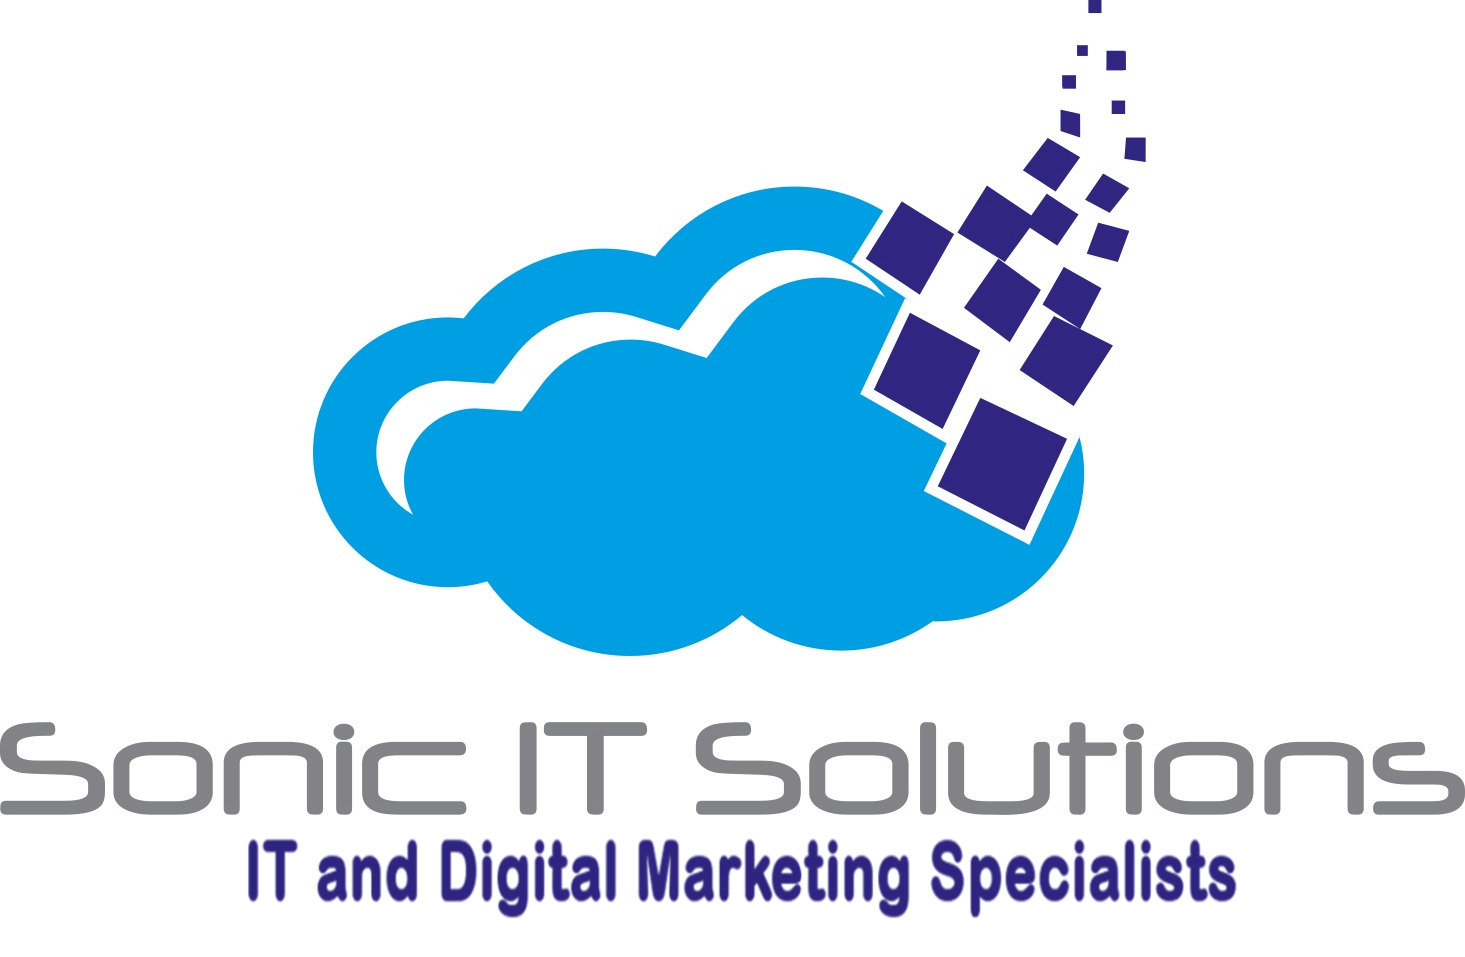 We specialize in IT solutions, and SEO digital marketing services for business.